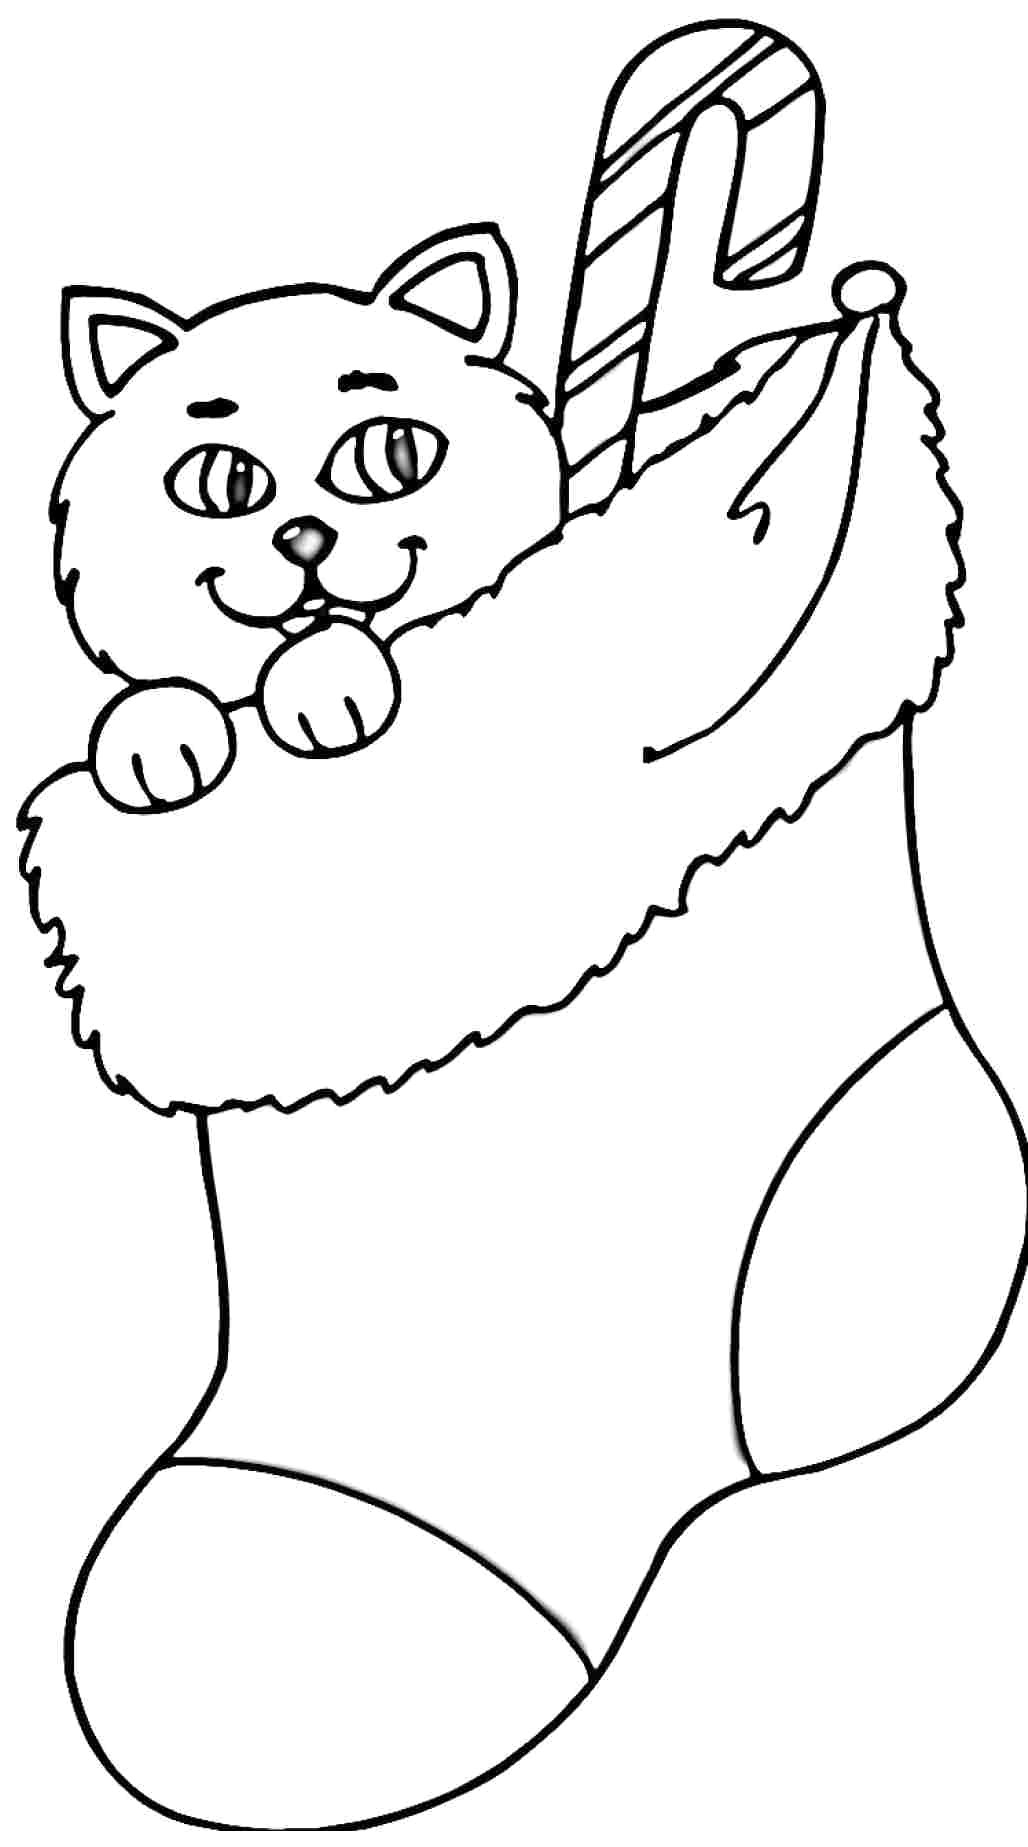 Christmas Coloring Stockings Template With Stocking Page Free Pages